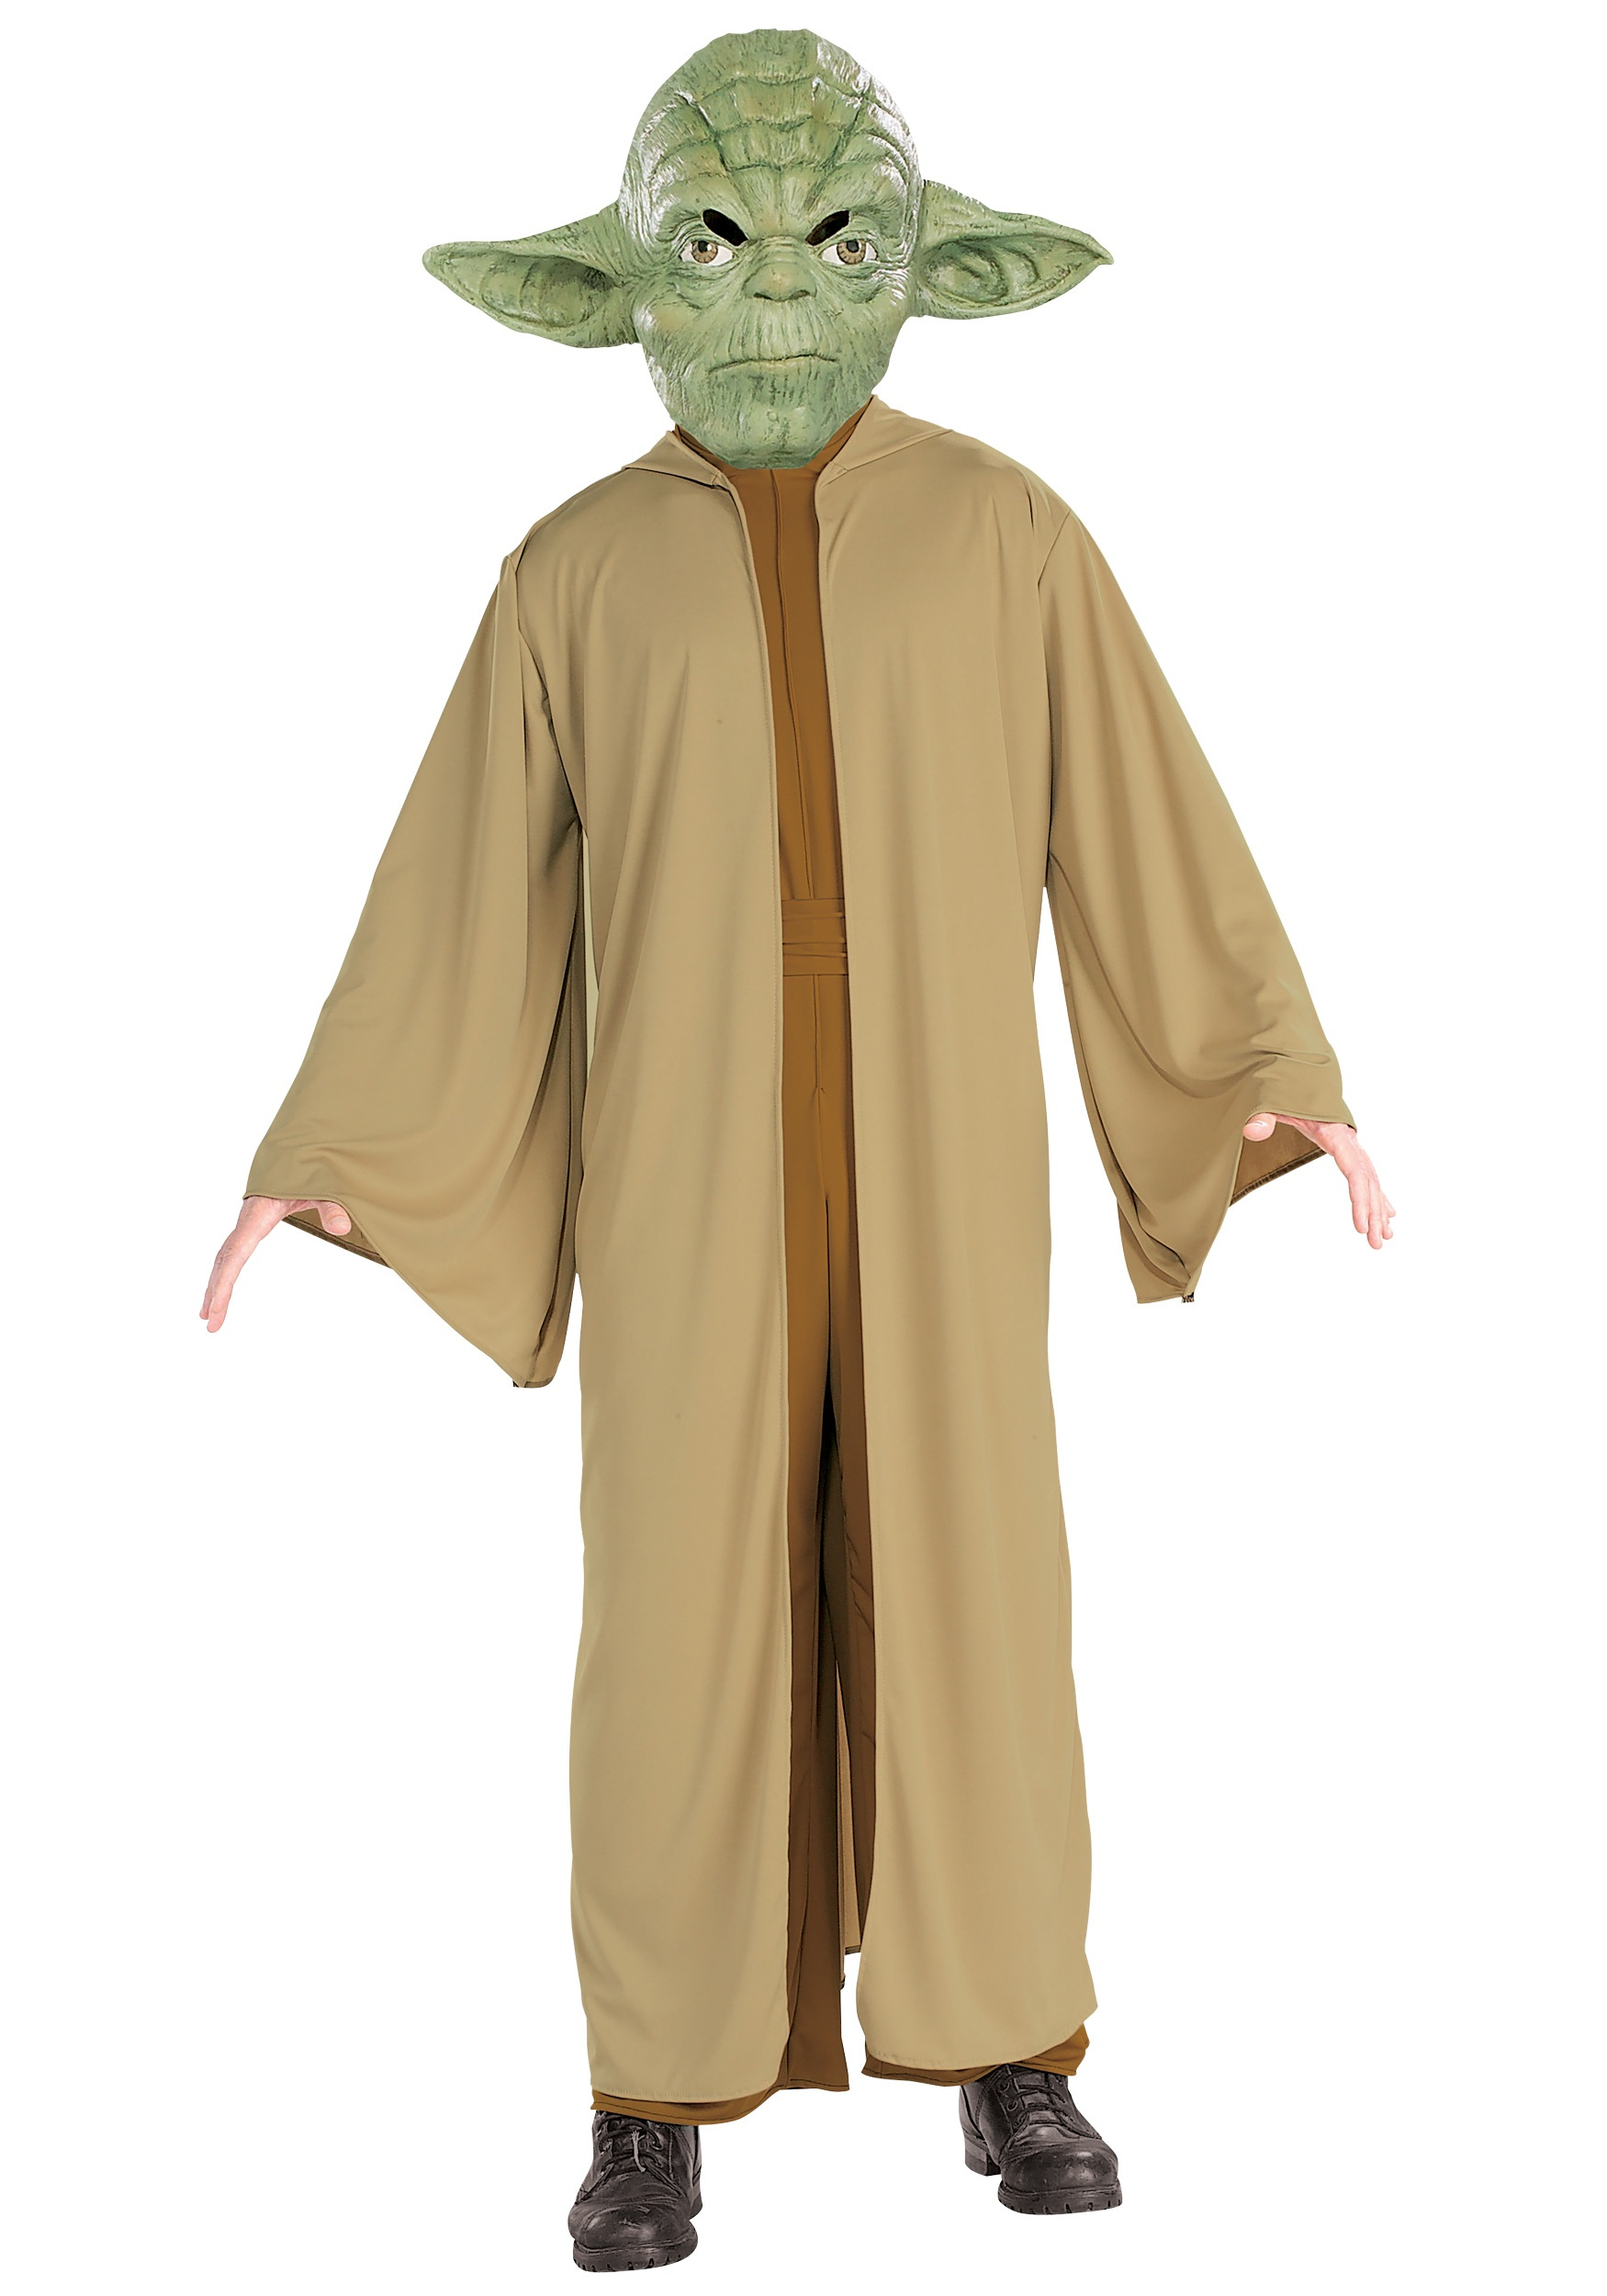 Adult Yoda Costume  sc 1 st  Halloween Costumes UK : yoda costume infant  - Germanpascual.Com